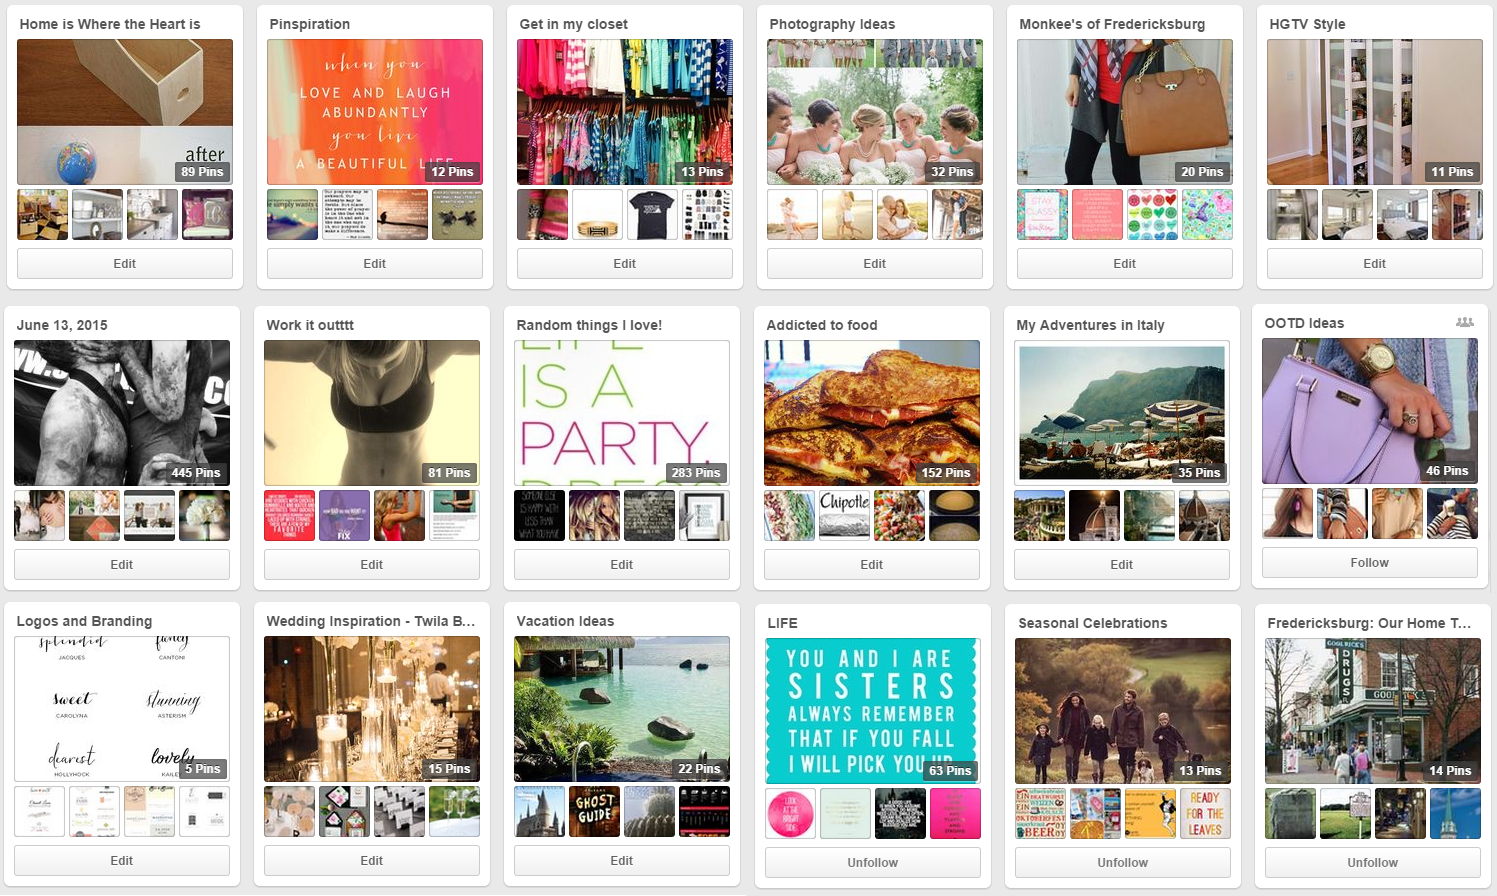 Allison for Twila - How Pinterest has Changed our Perception - pic